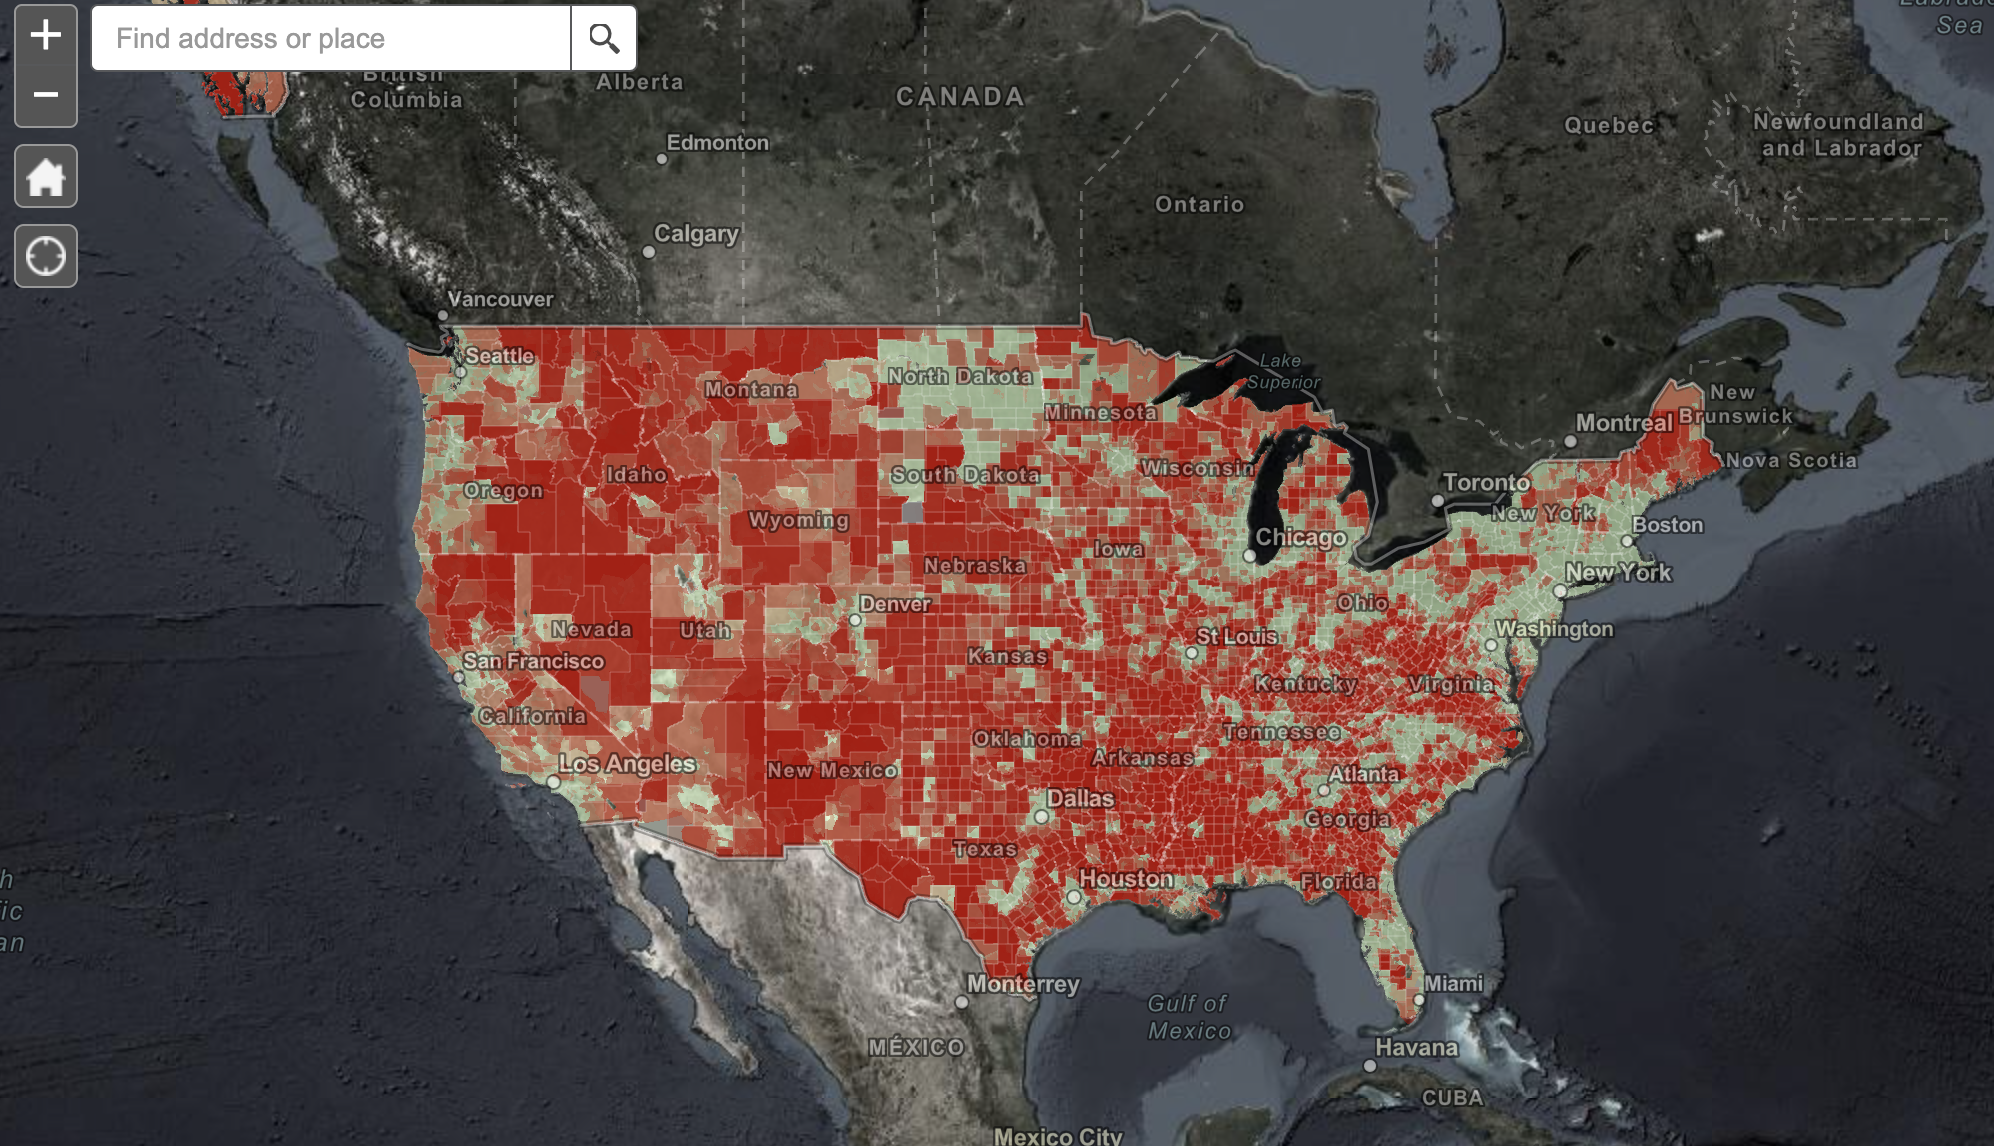 NTIA map of broadband access in the US